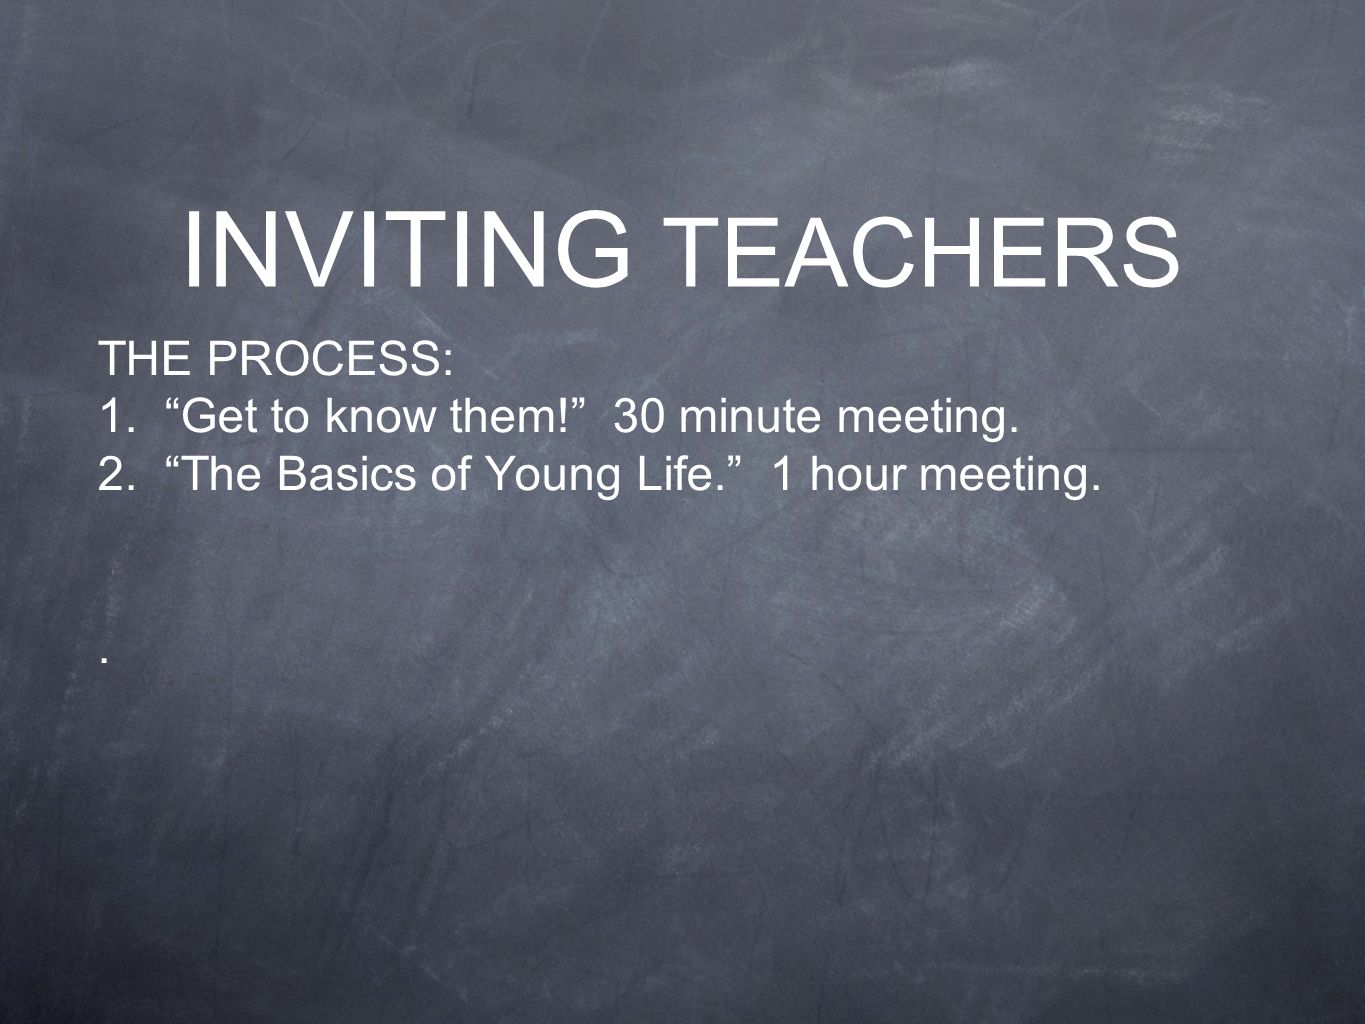 THE PROCESS: 1. Get to know them. 30 minute meeting.